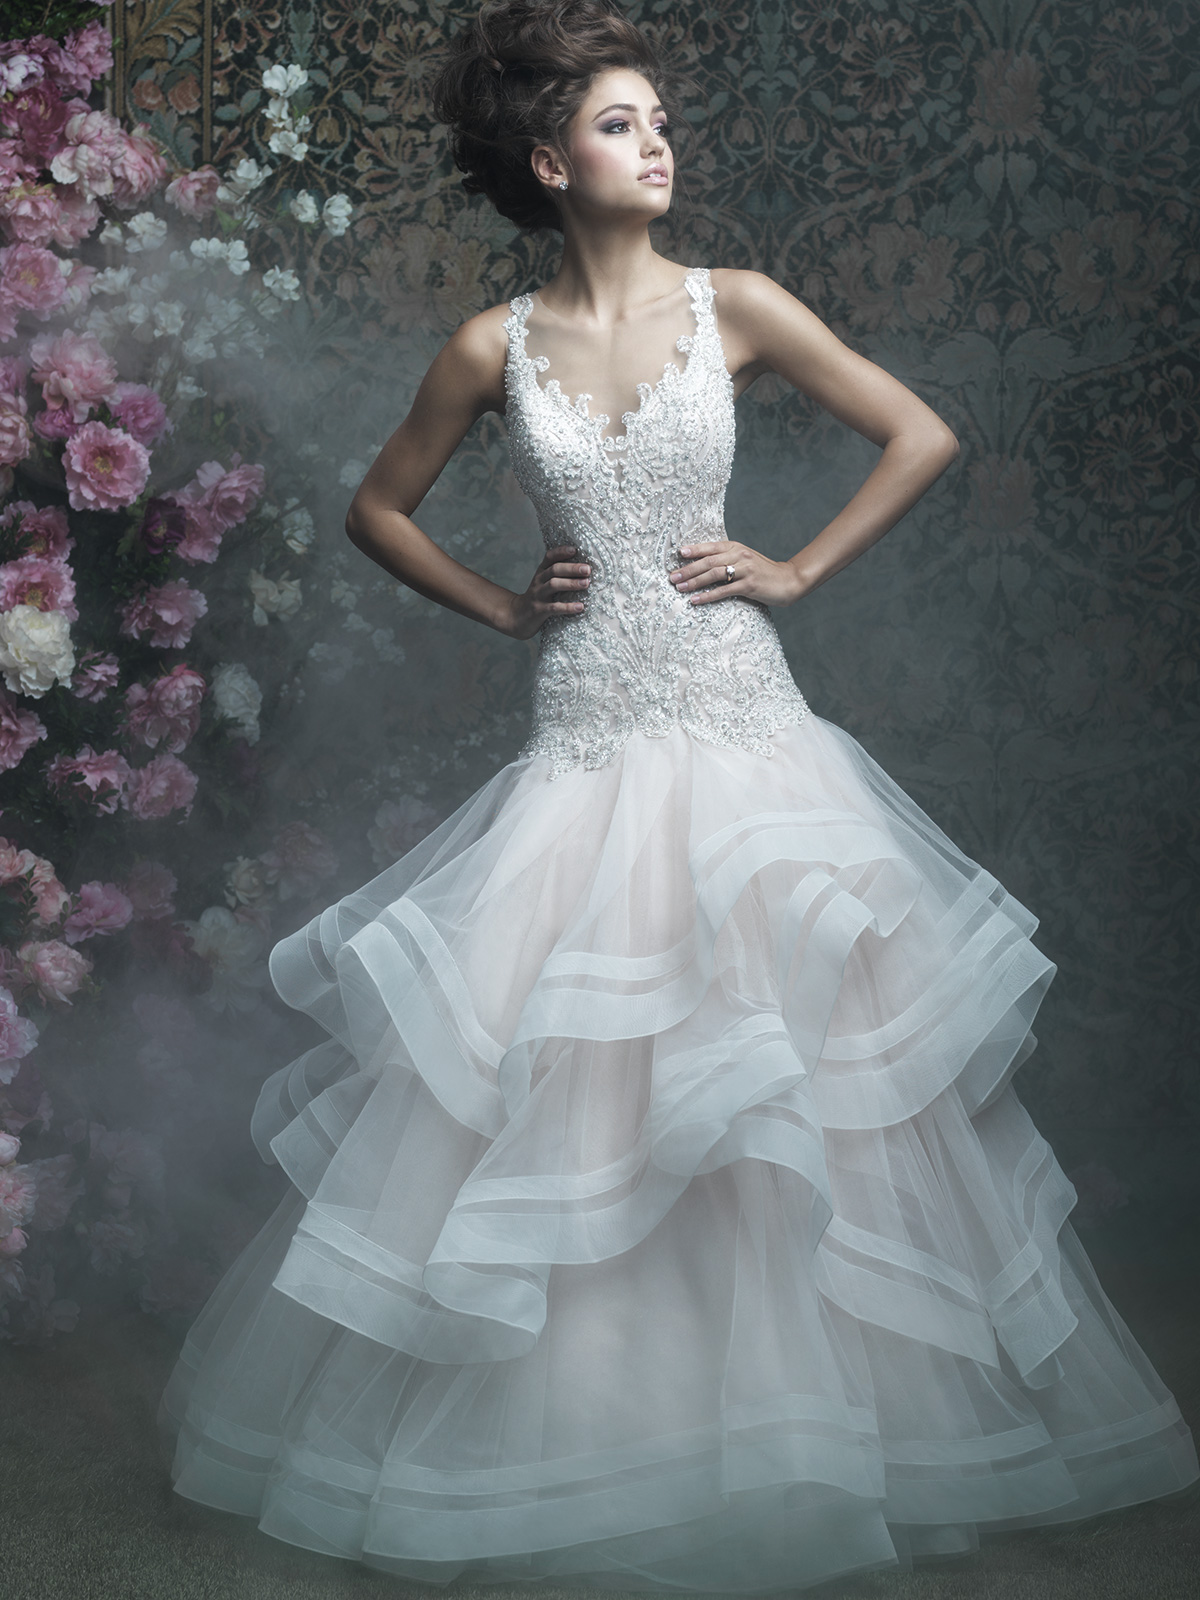 Allure Bridals Couture C405 V-neck Layered A-line Wedding Dress ...